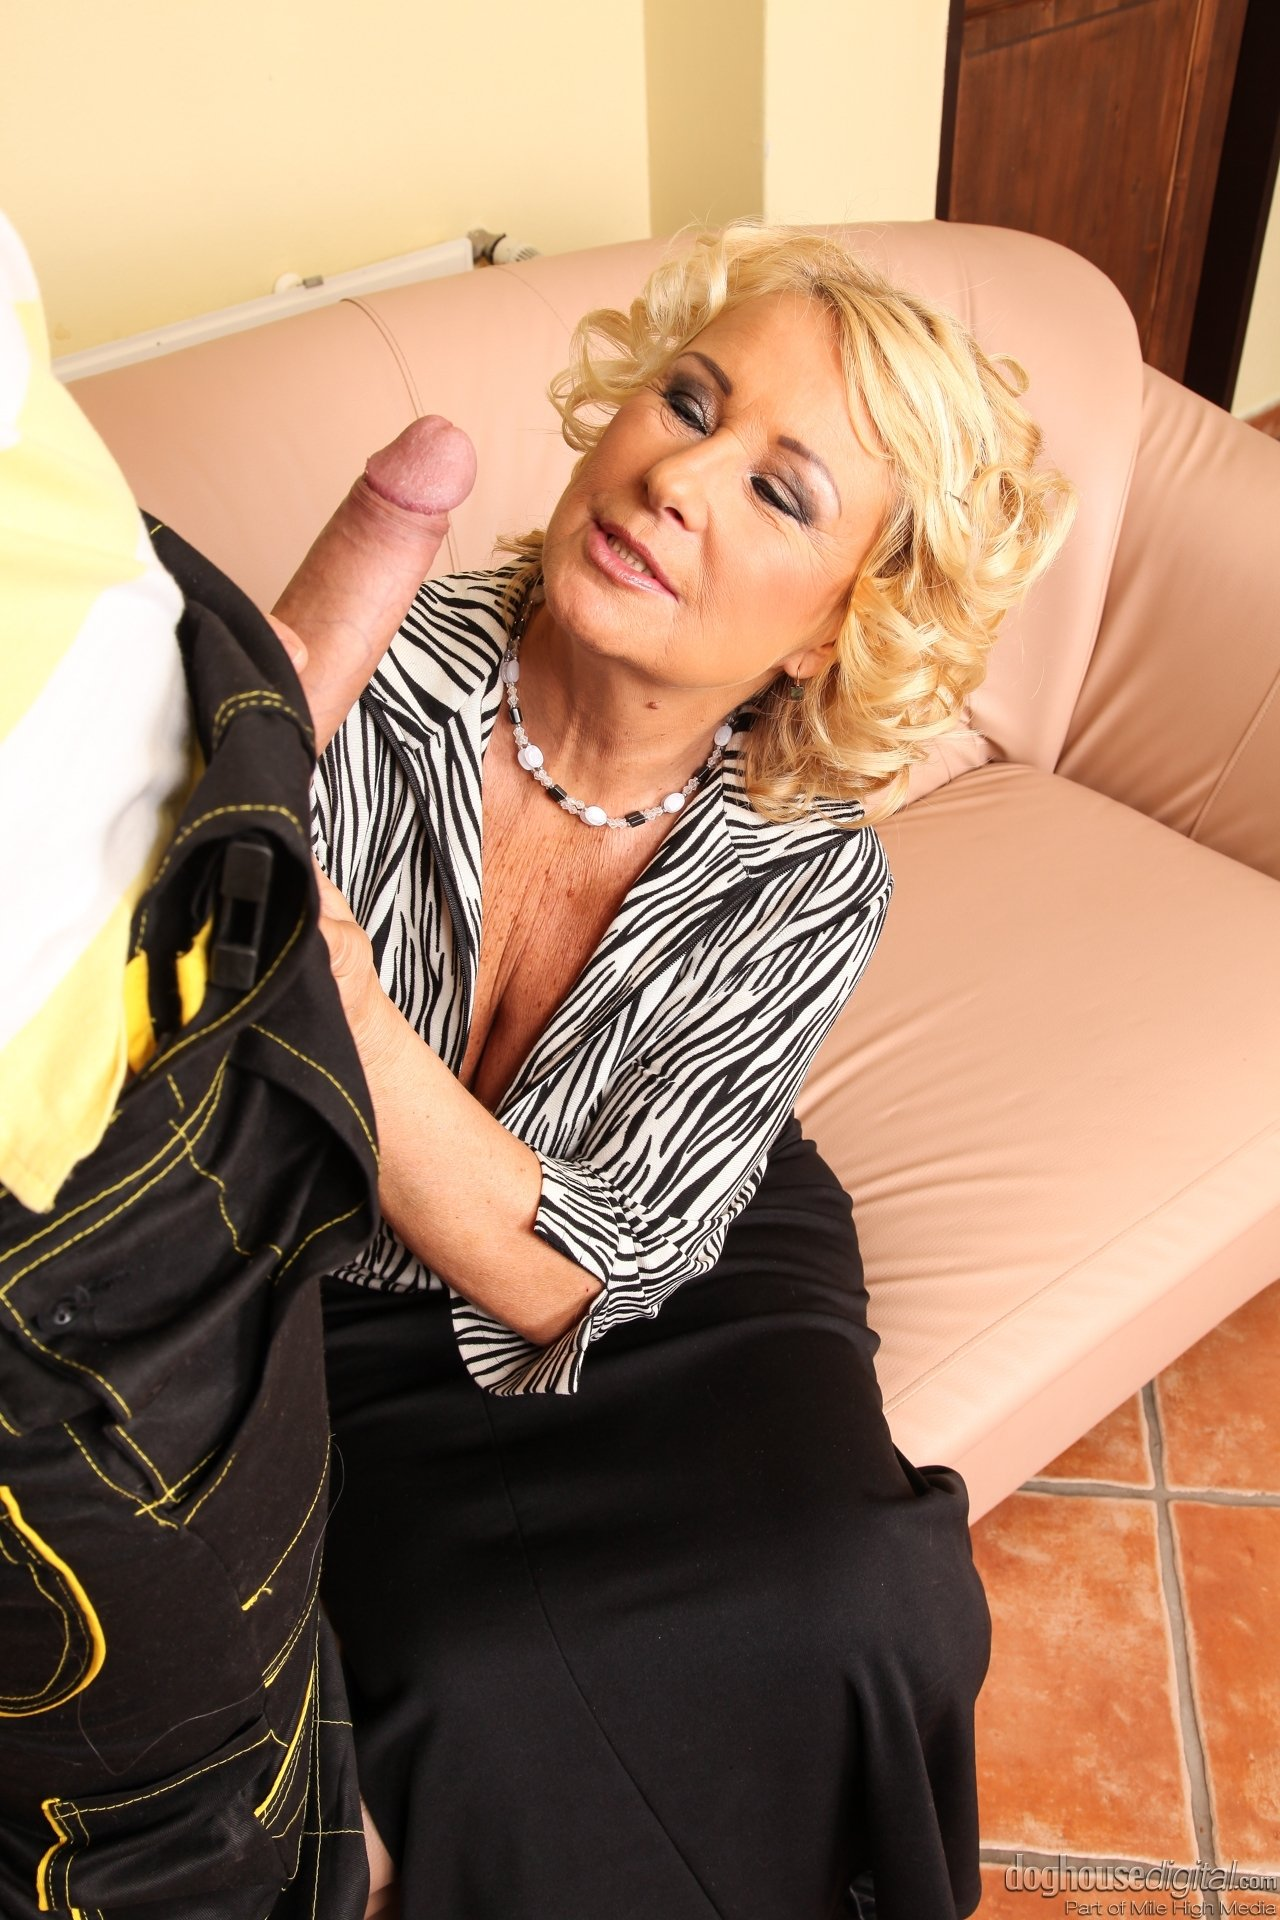 veronica hart hardcore mature and young les